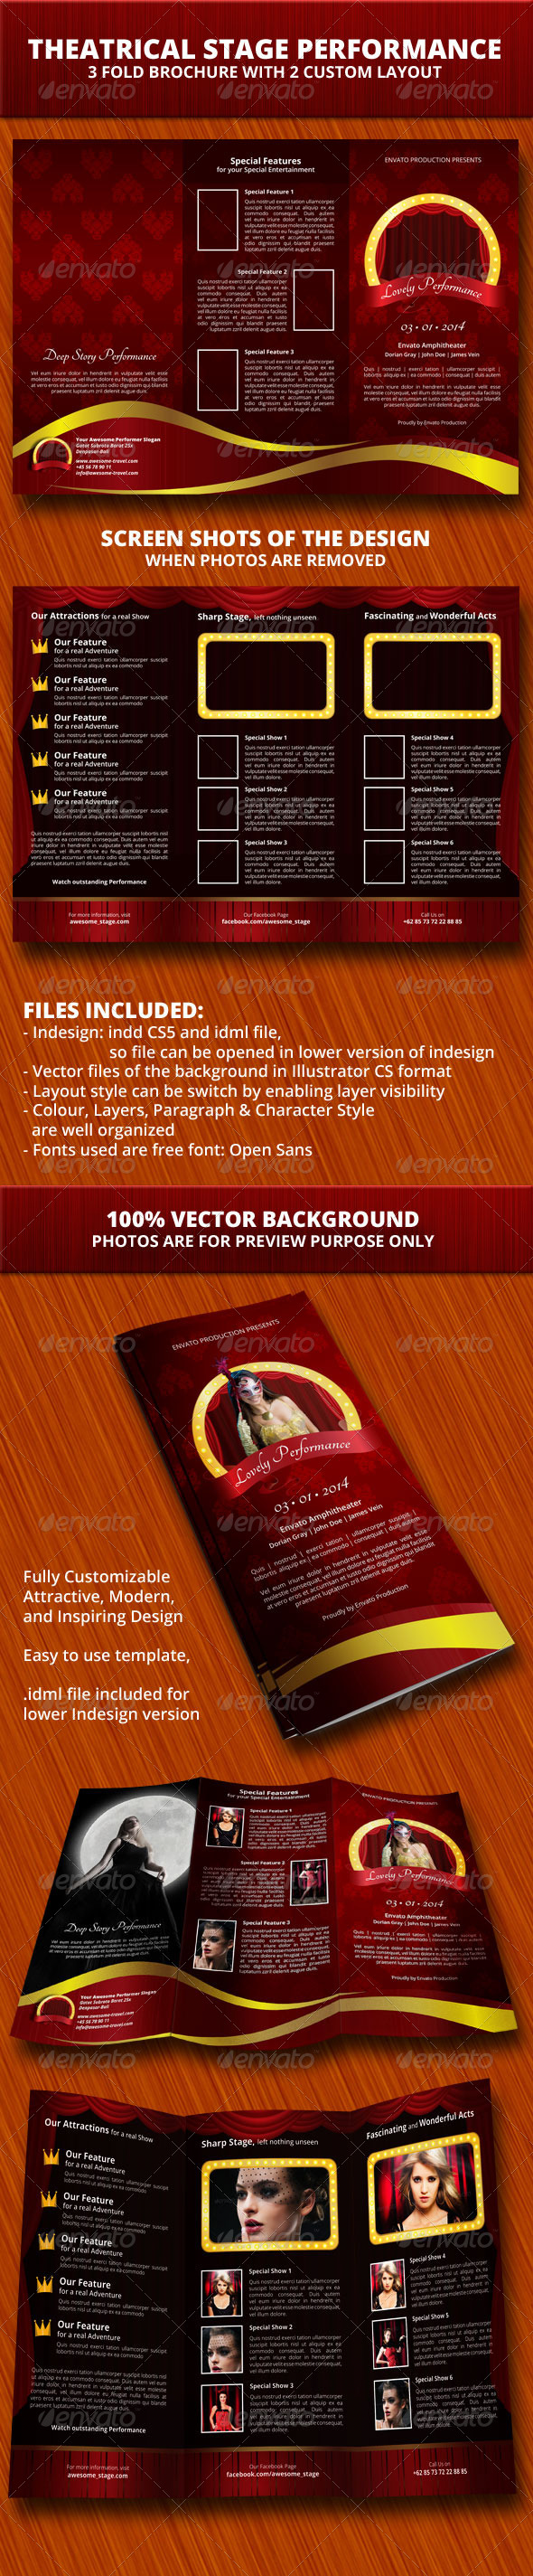 GraphicRiver Theaterical Stage Performance Trifold Brochure 6489920